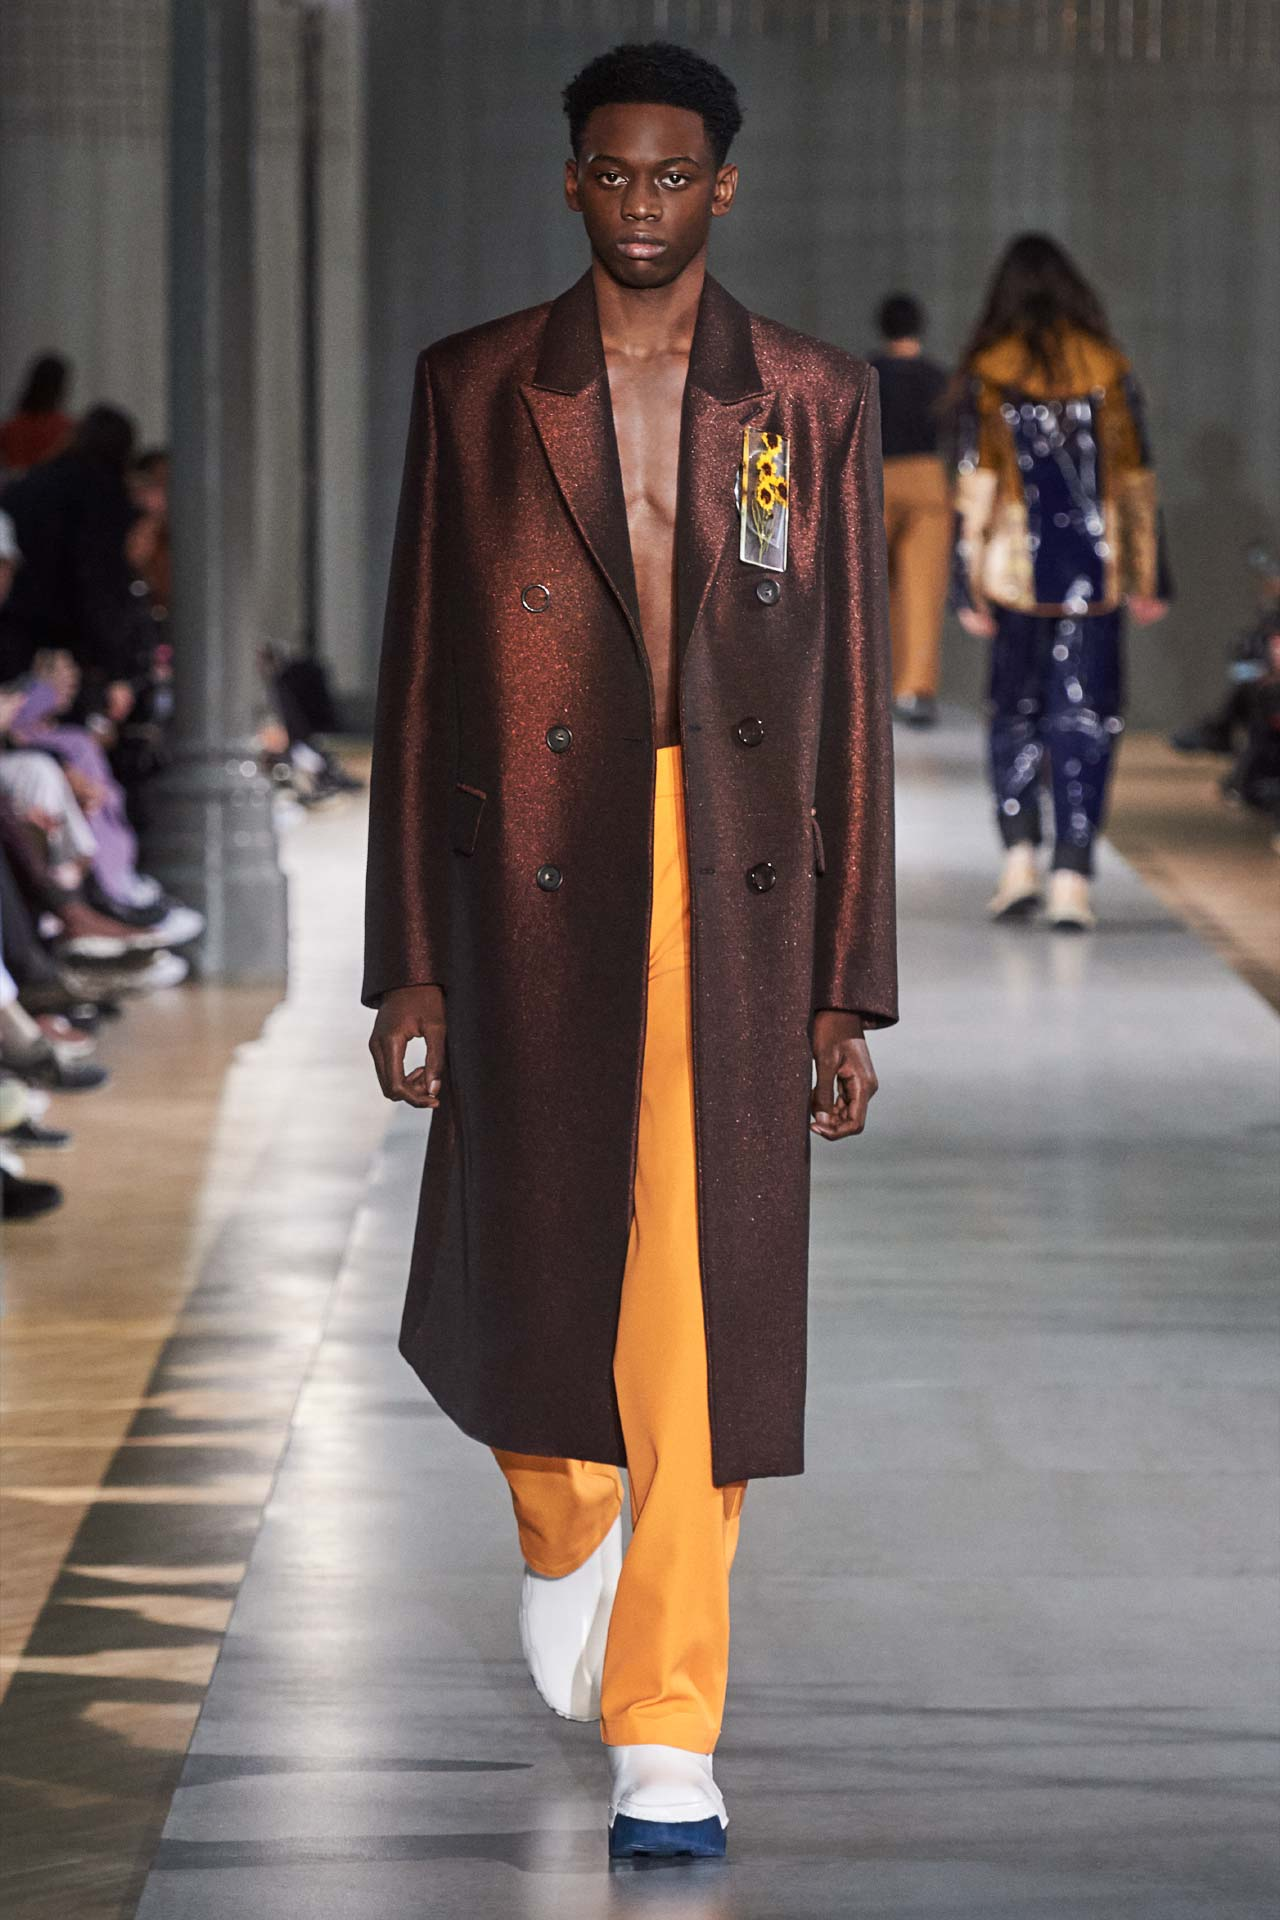 Look Fall/Winter 2019, image 29